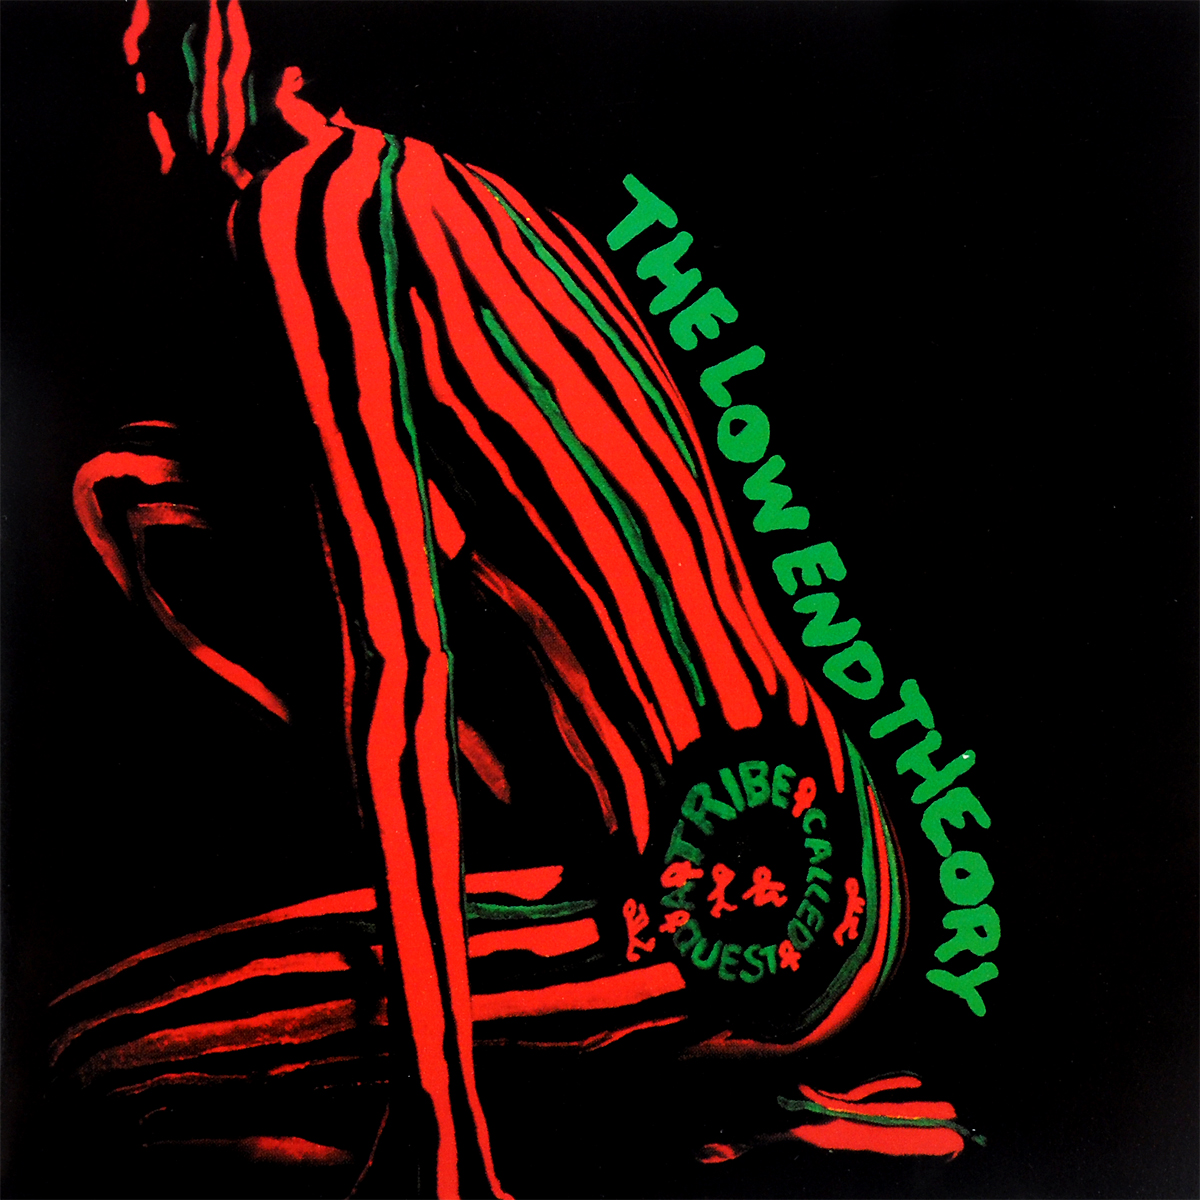 A Tribe Called Quest A Tribe Called Quest. The Low End Theory 50mm hordes tribe oberos kaya the wildheart